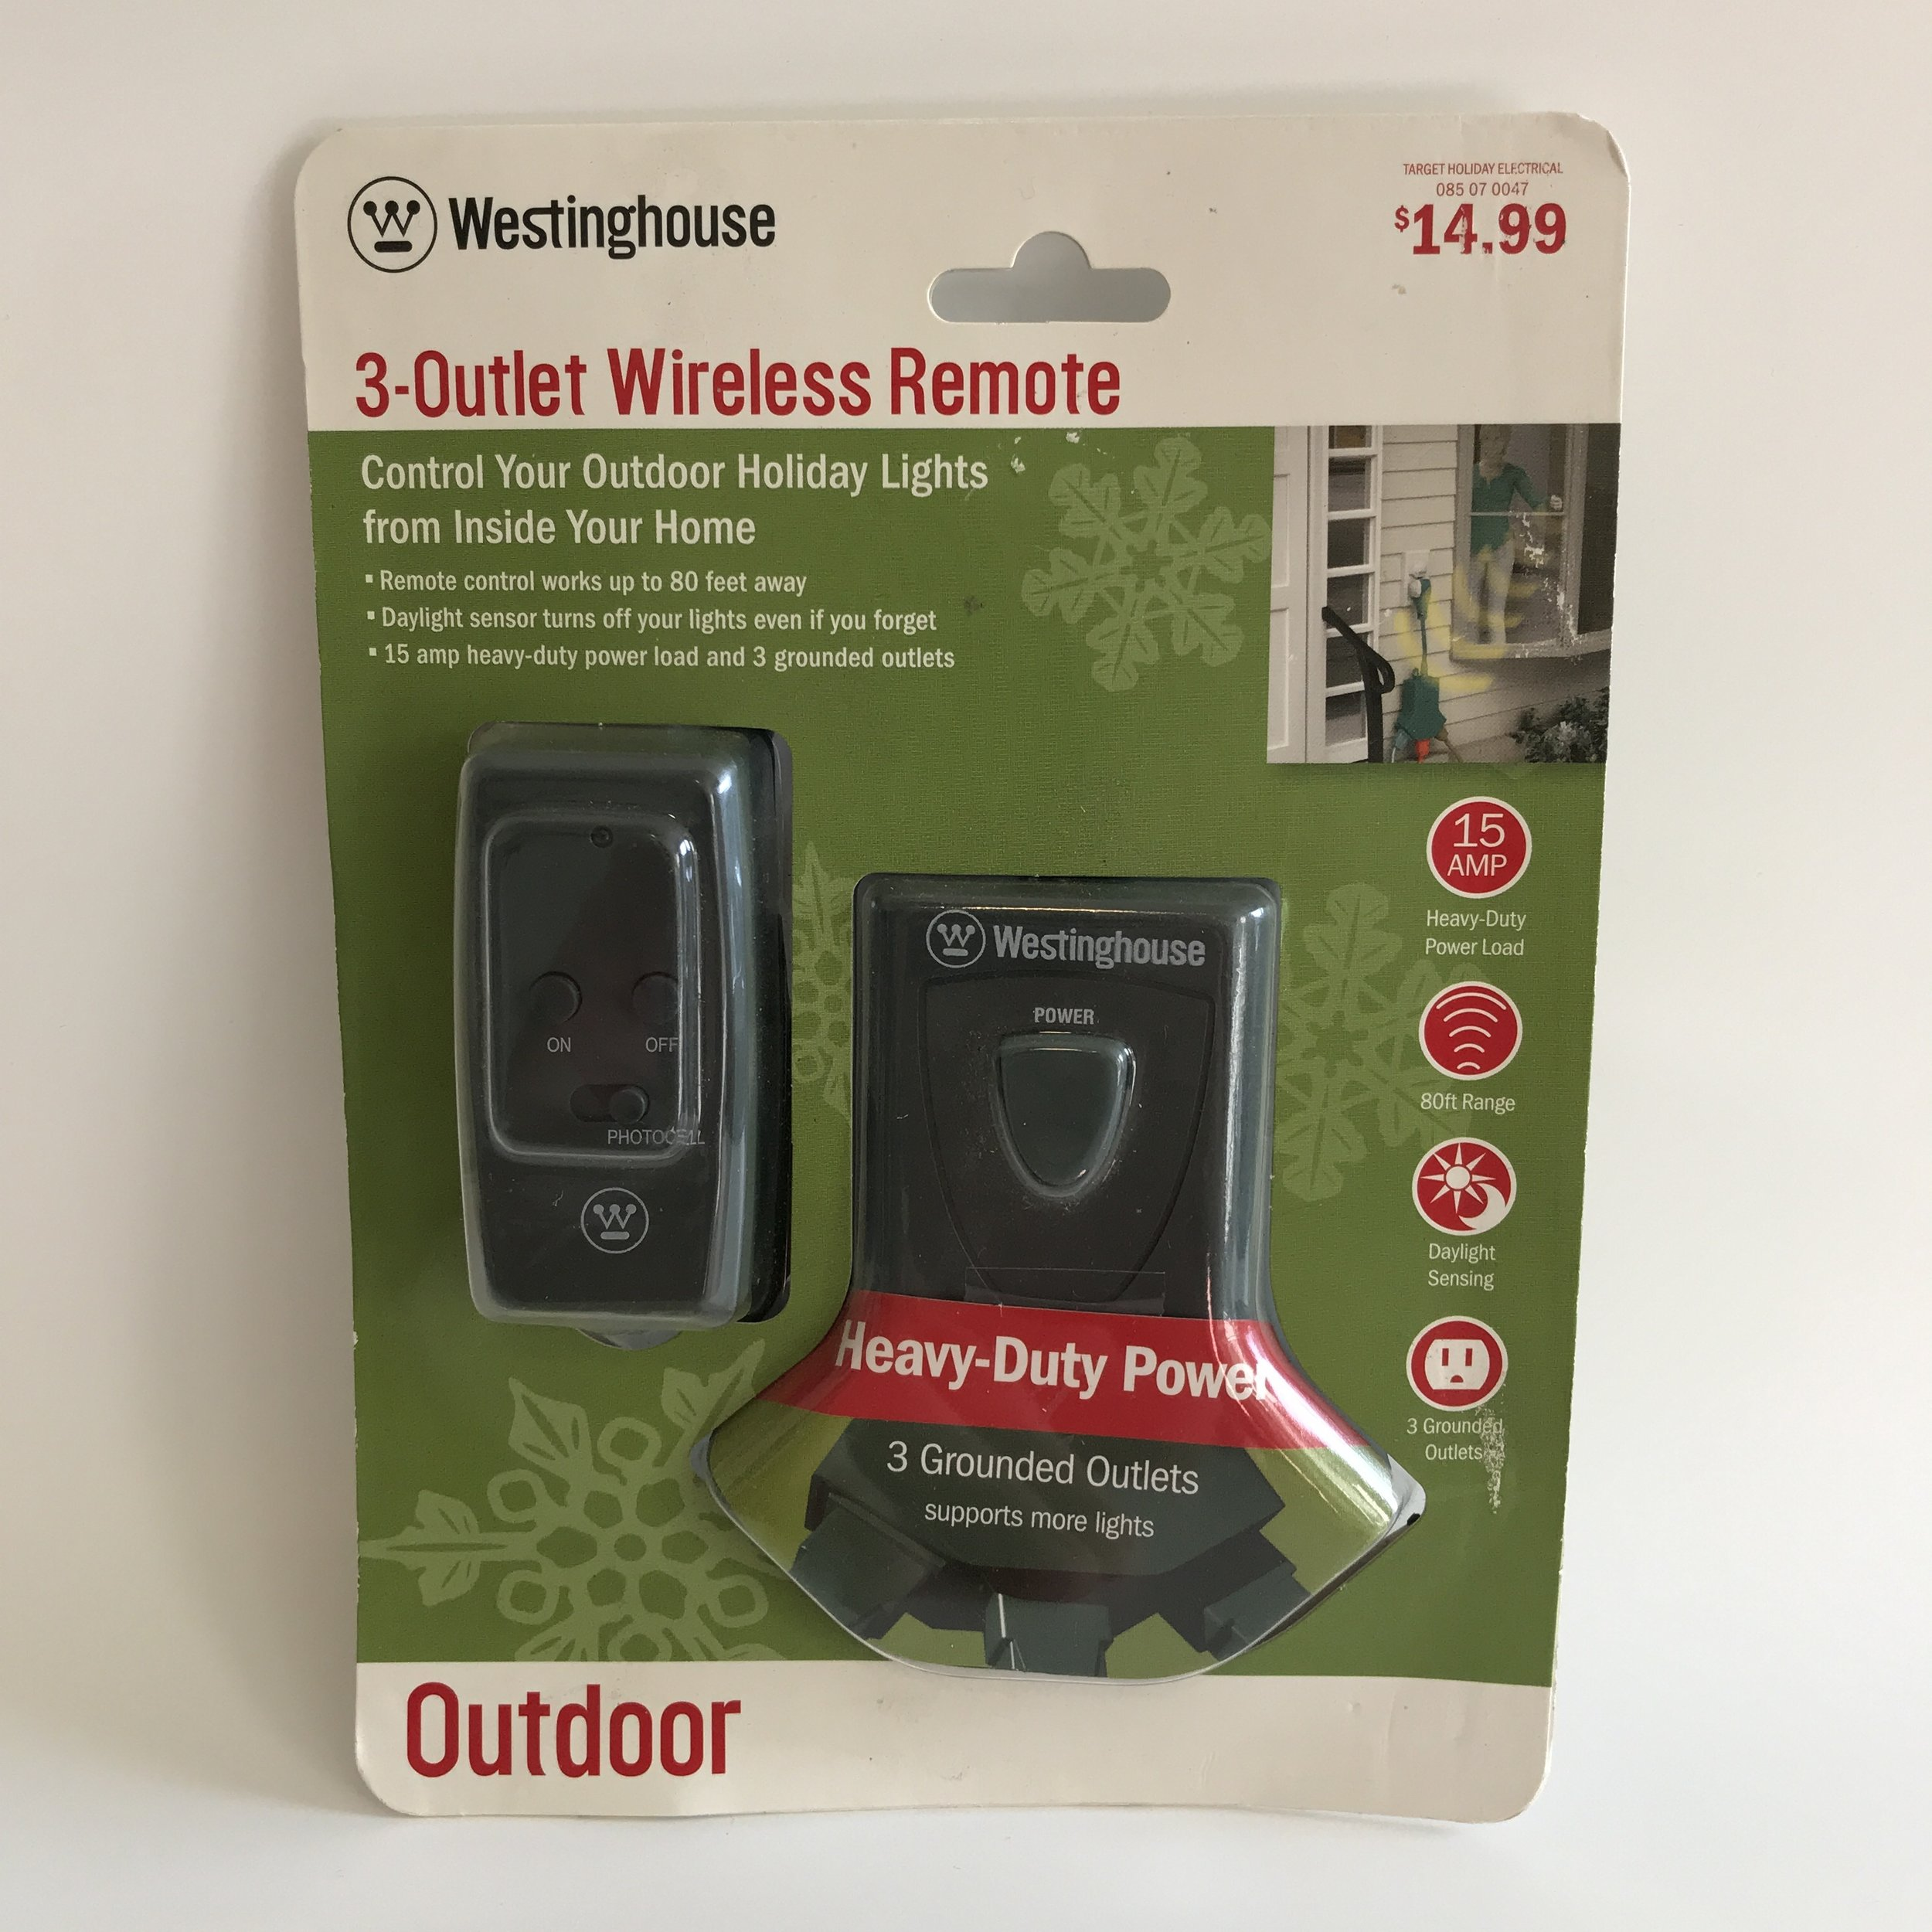 3-outlet wireless remote